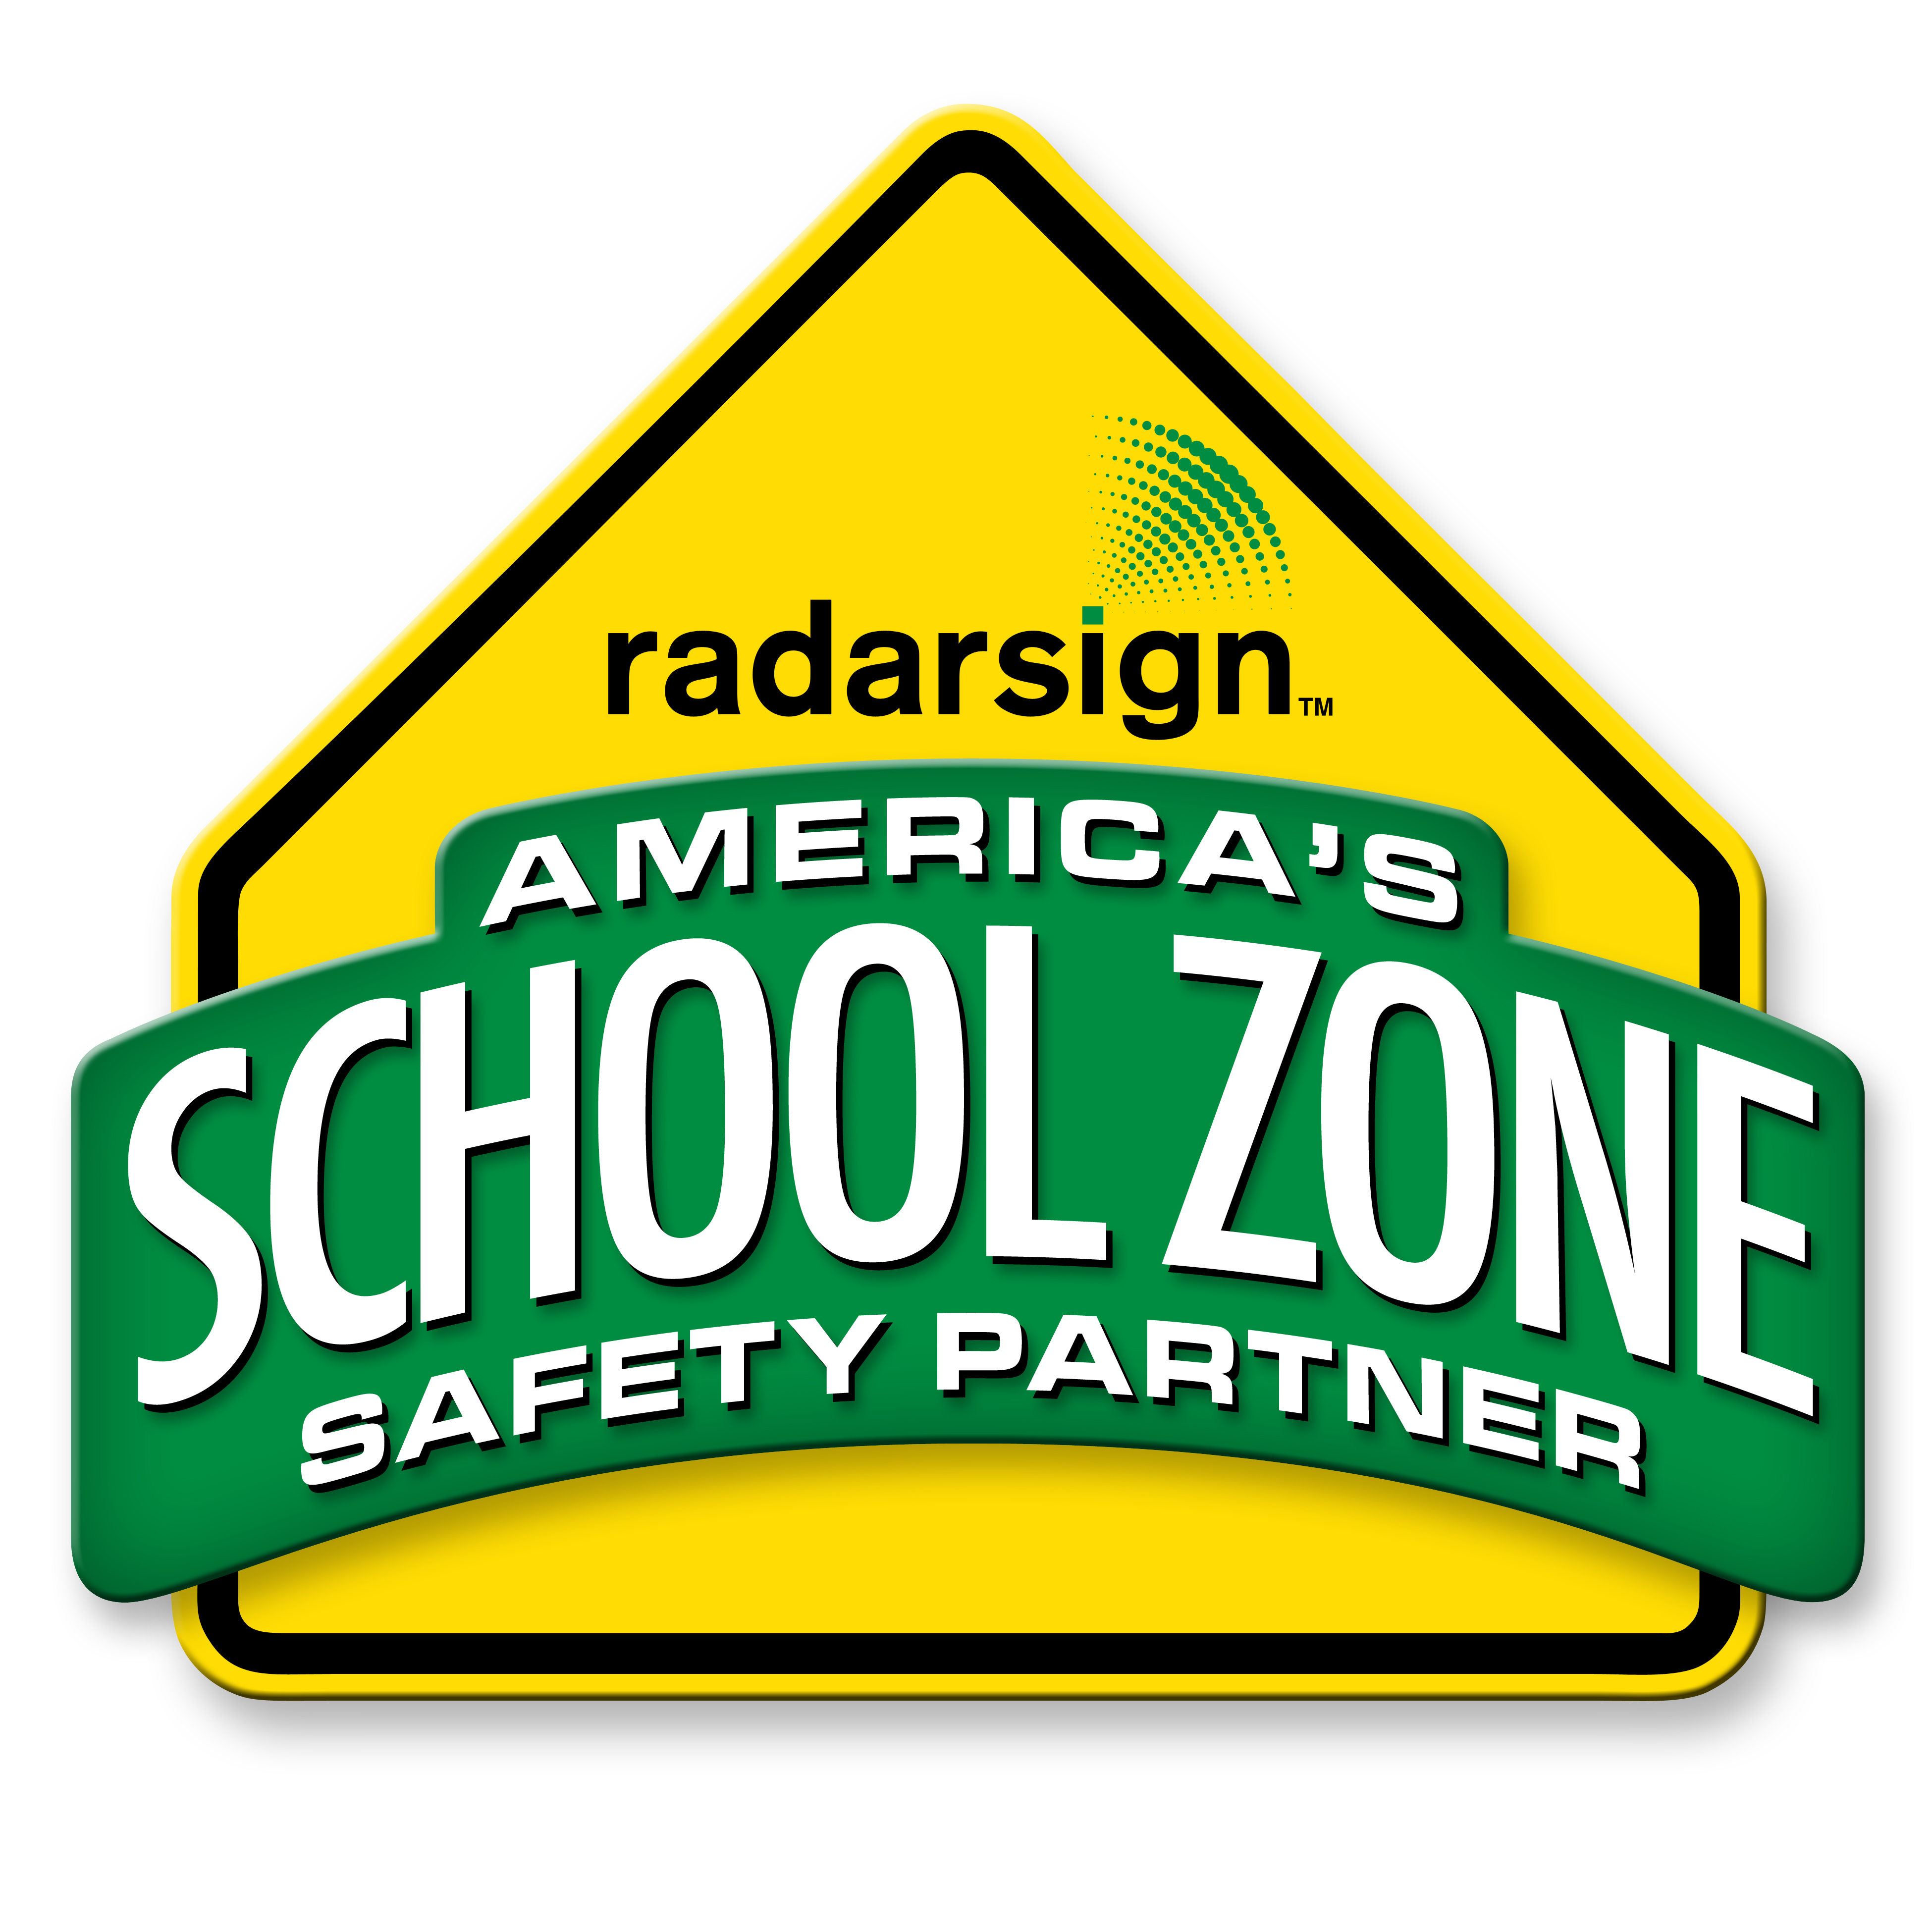 Best practices in school zone traffic calming radarsign school zone safety partner logo lg biocorpaavc Choice Image